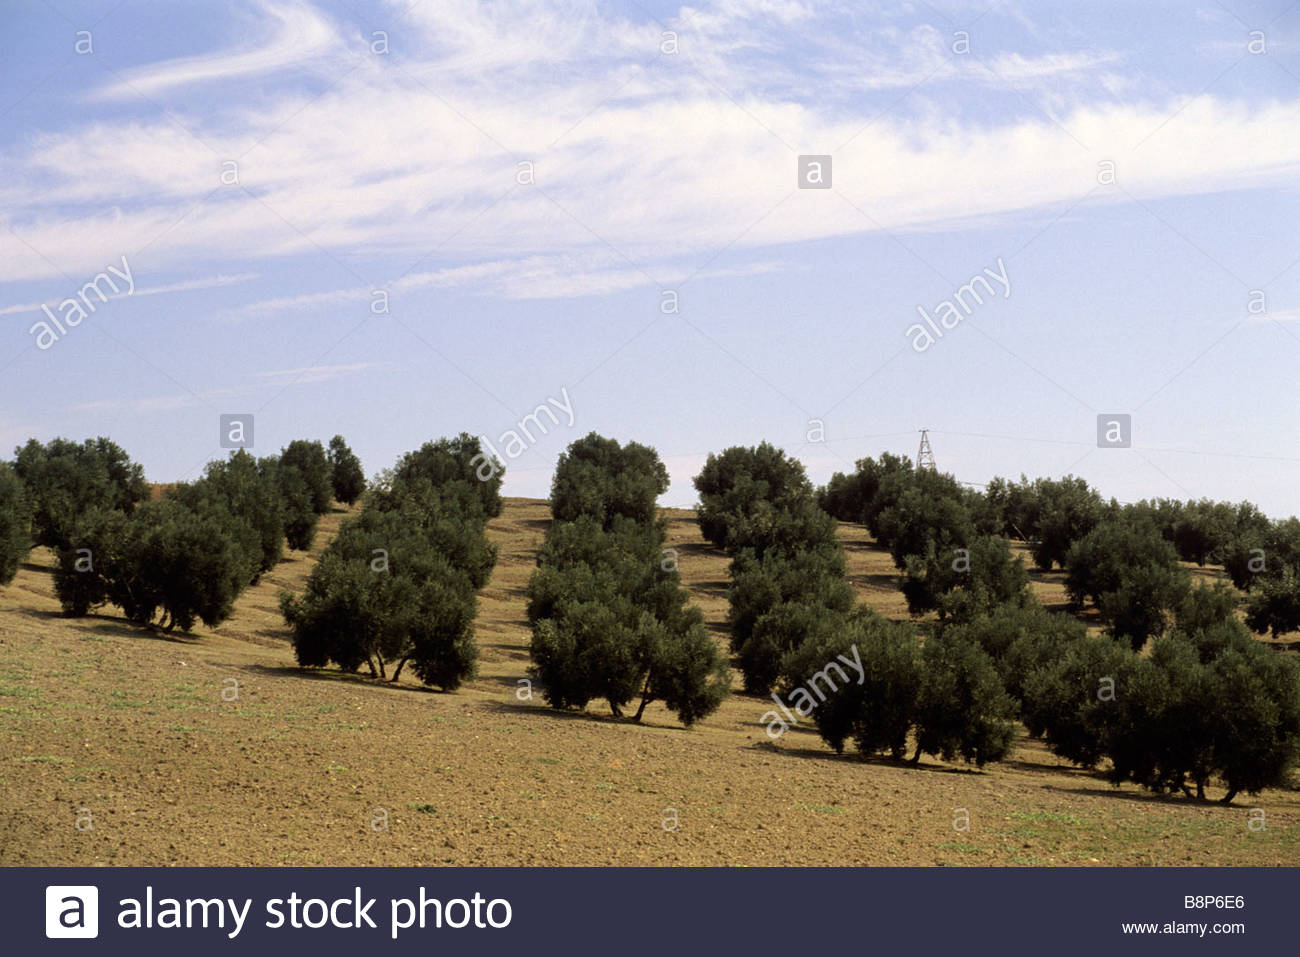 ulivi, jaen, andalusia, spain - Stock Image